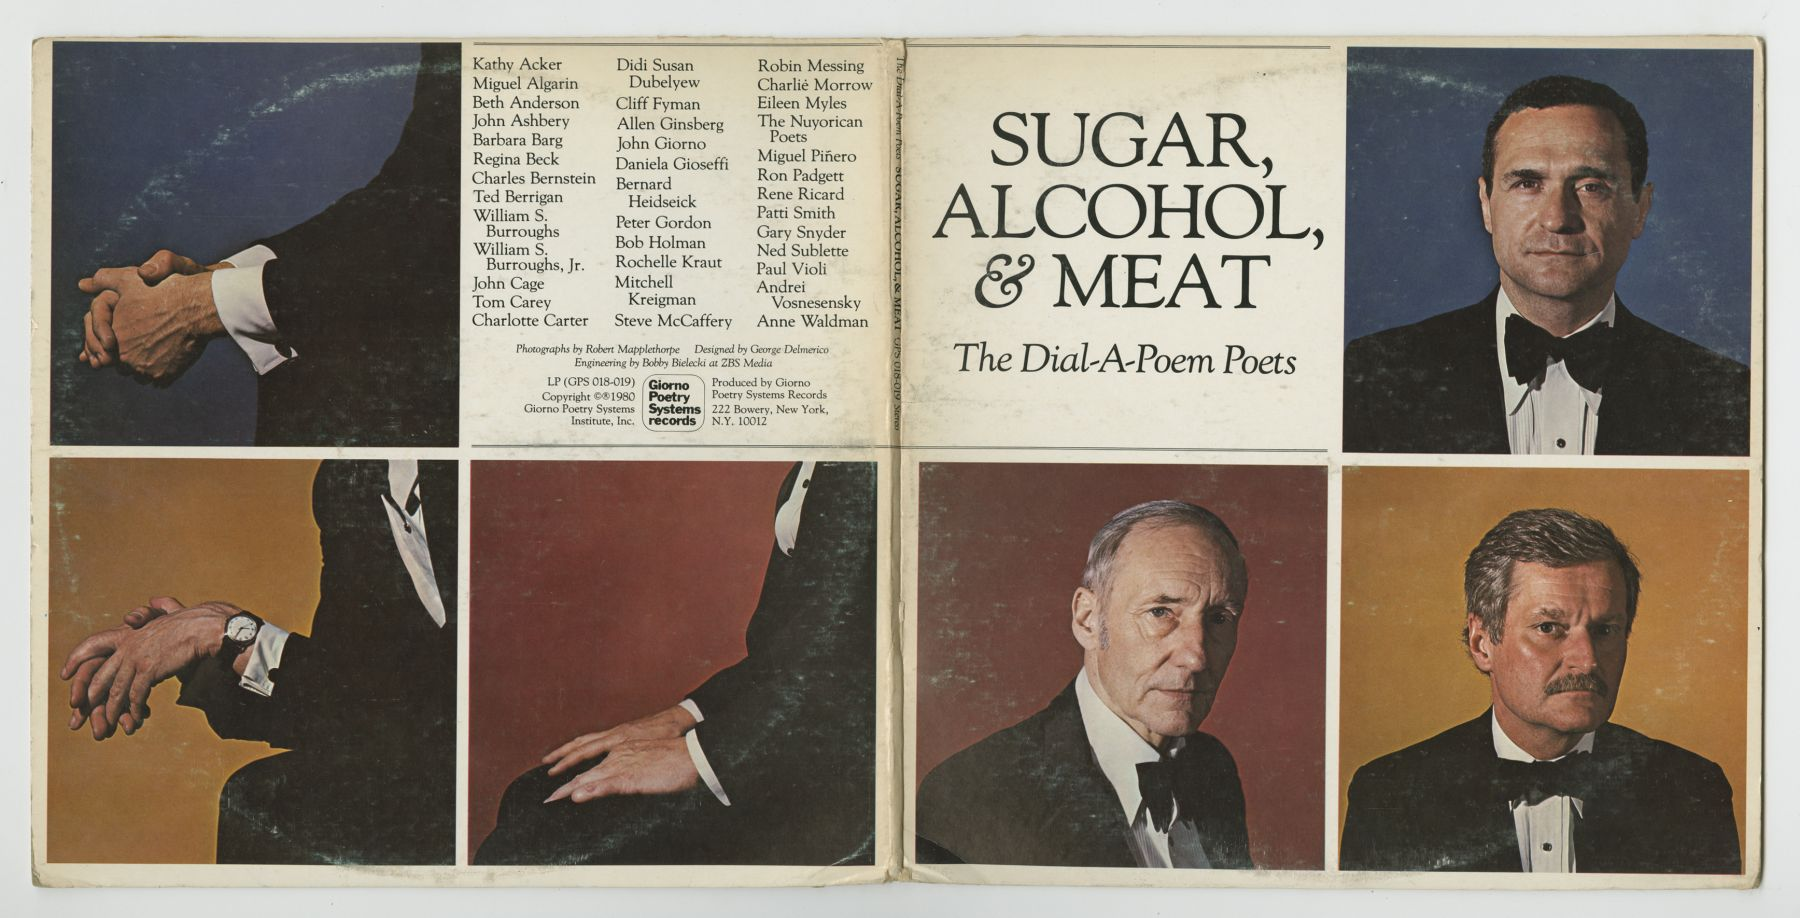 The Dial-A-Poem Poets: Sugar, Alcohol, & Meat (1980), front and back covers